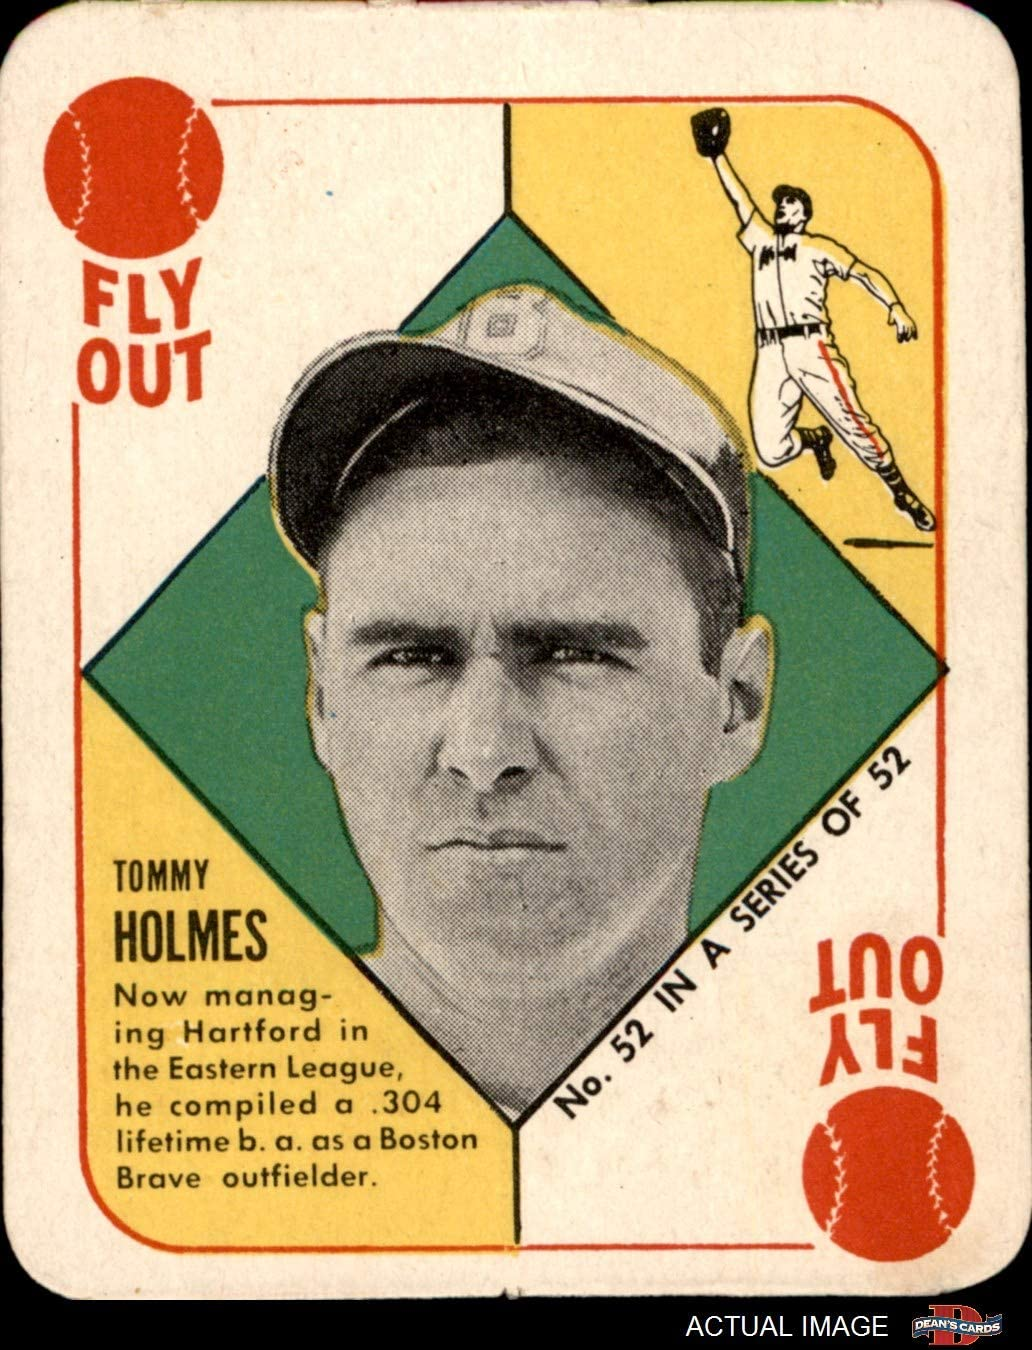 "1951 Topps # 52 HAR Tommy Holmes Boston Braves (Baseball Card) (Bio Begins""Now Managing Hartford"") Dean's Cards 4 - VG/EX Braves 71bbDwpo2ULSL1350_"